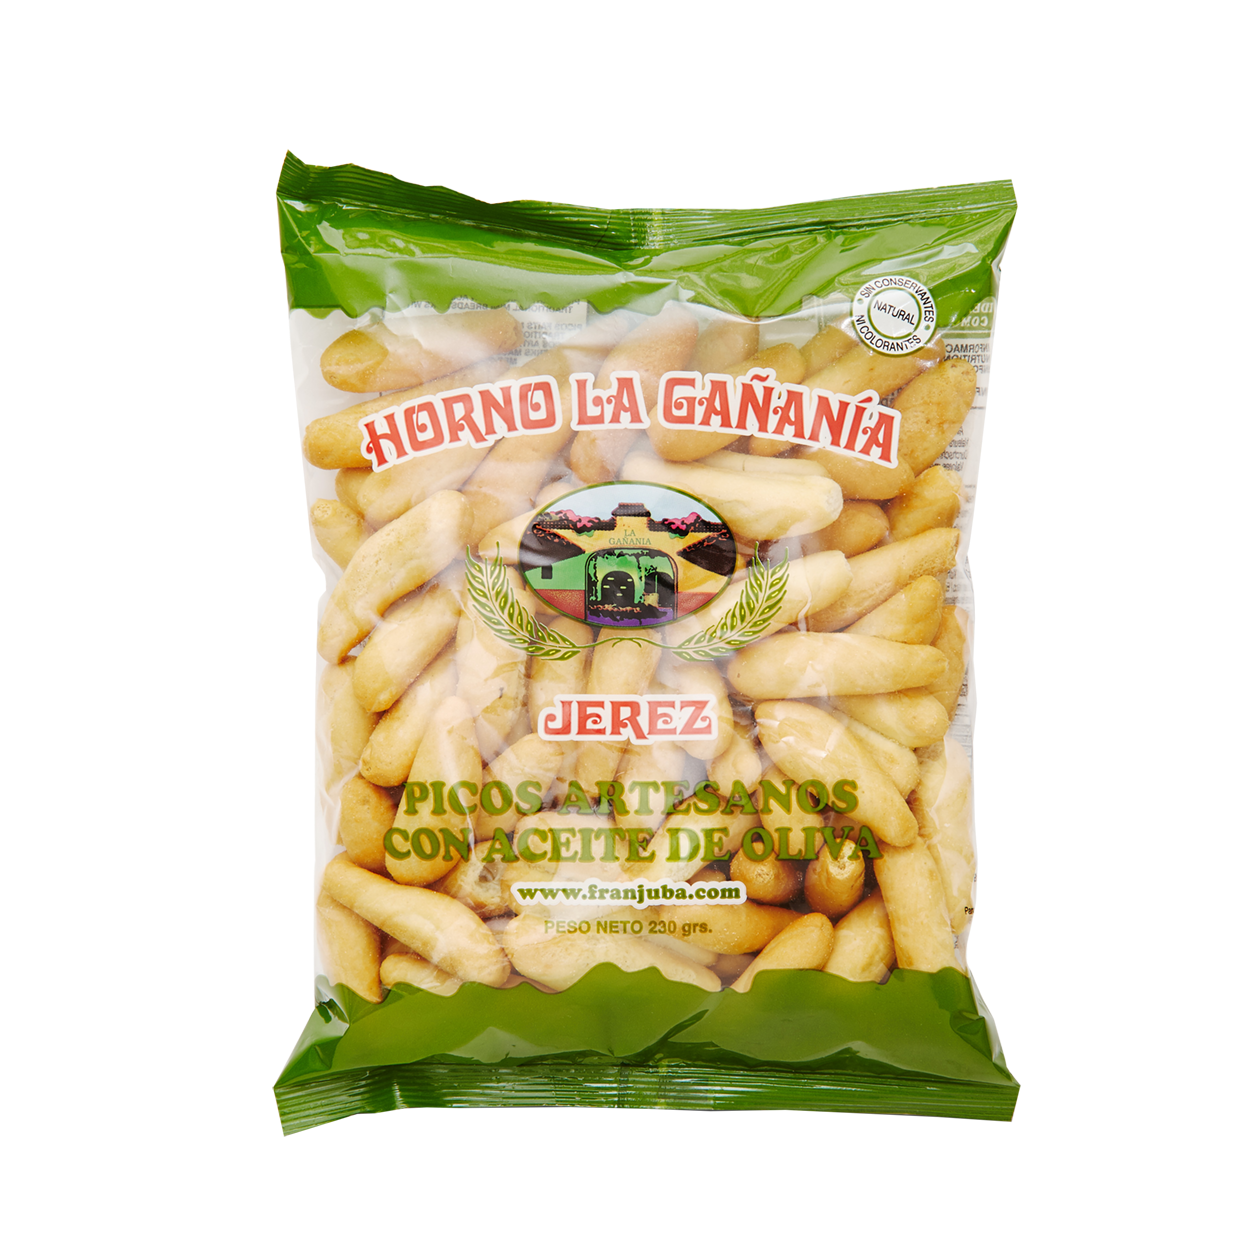 Picos de Pan - Mini Breadsticks 230g